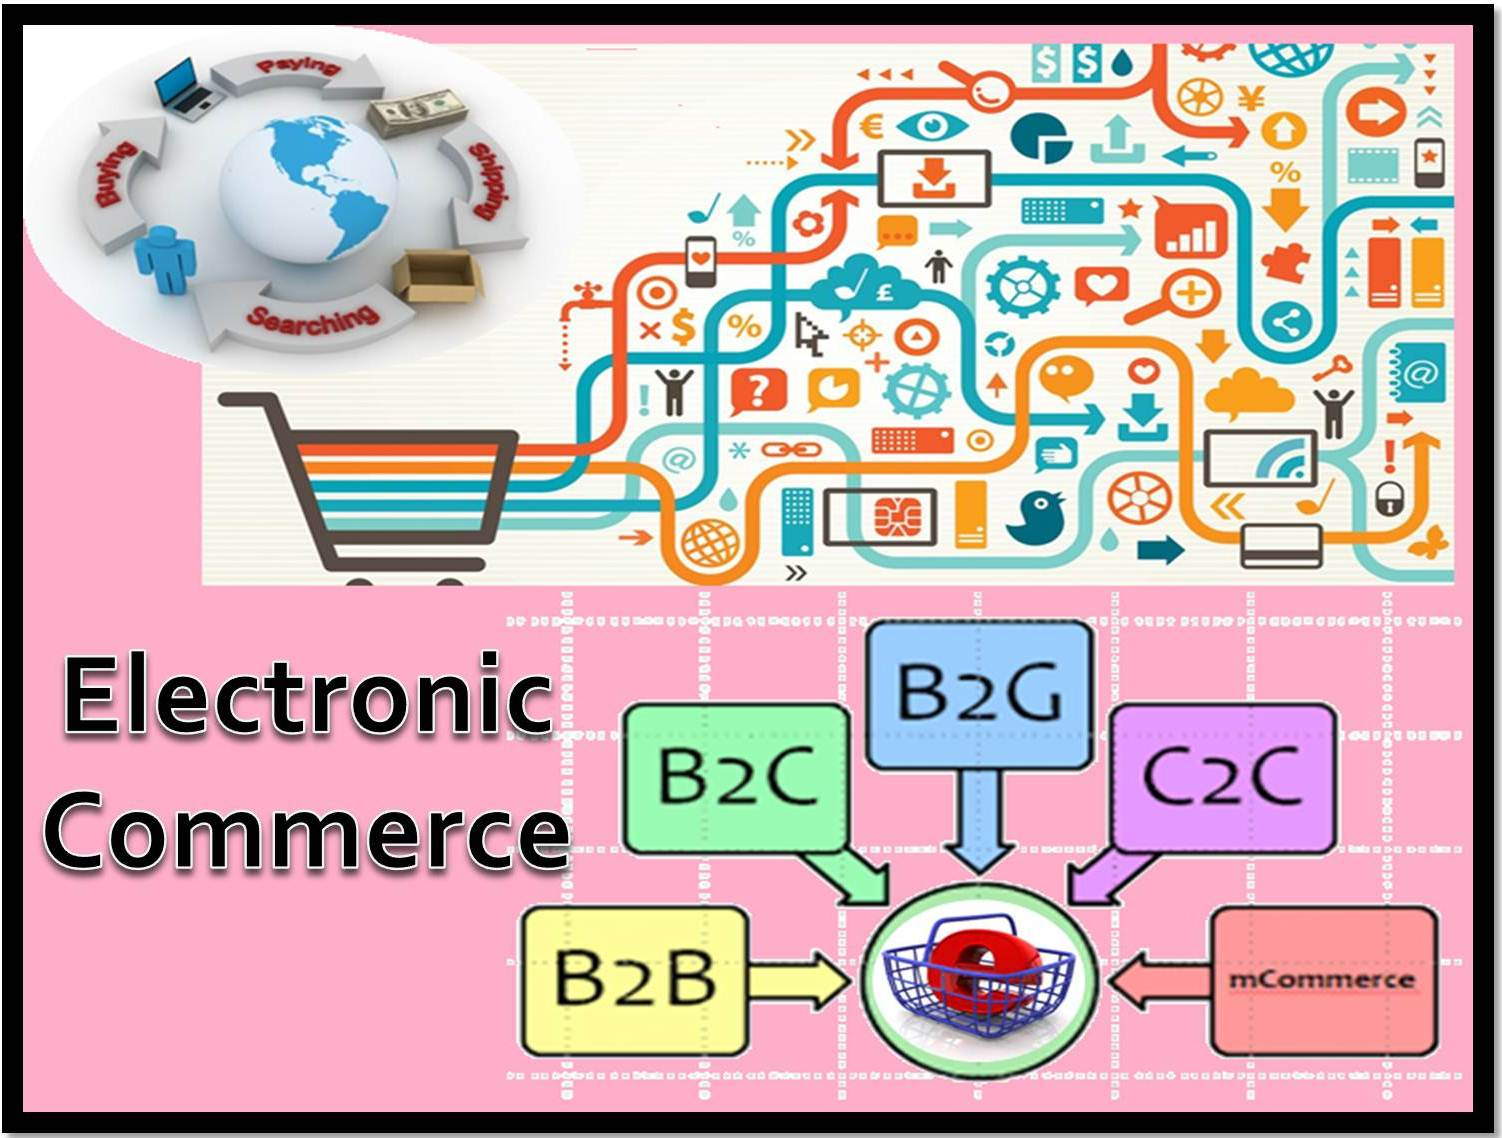 http://study.aisectonline.com/images/Electronic Commerce.jpg